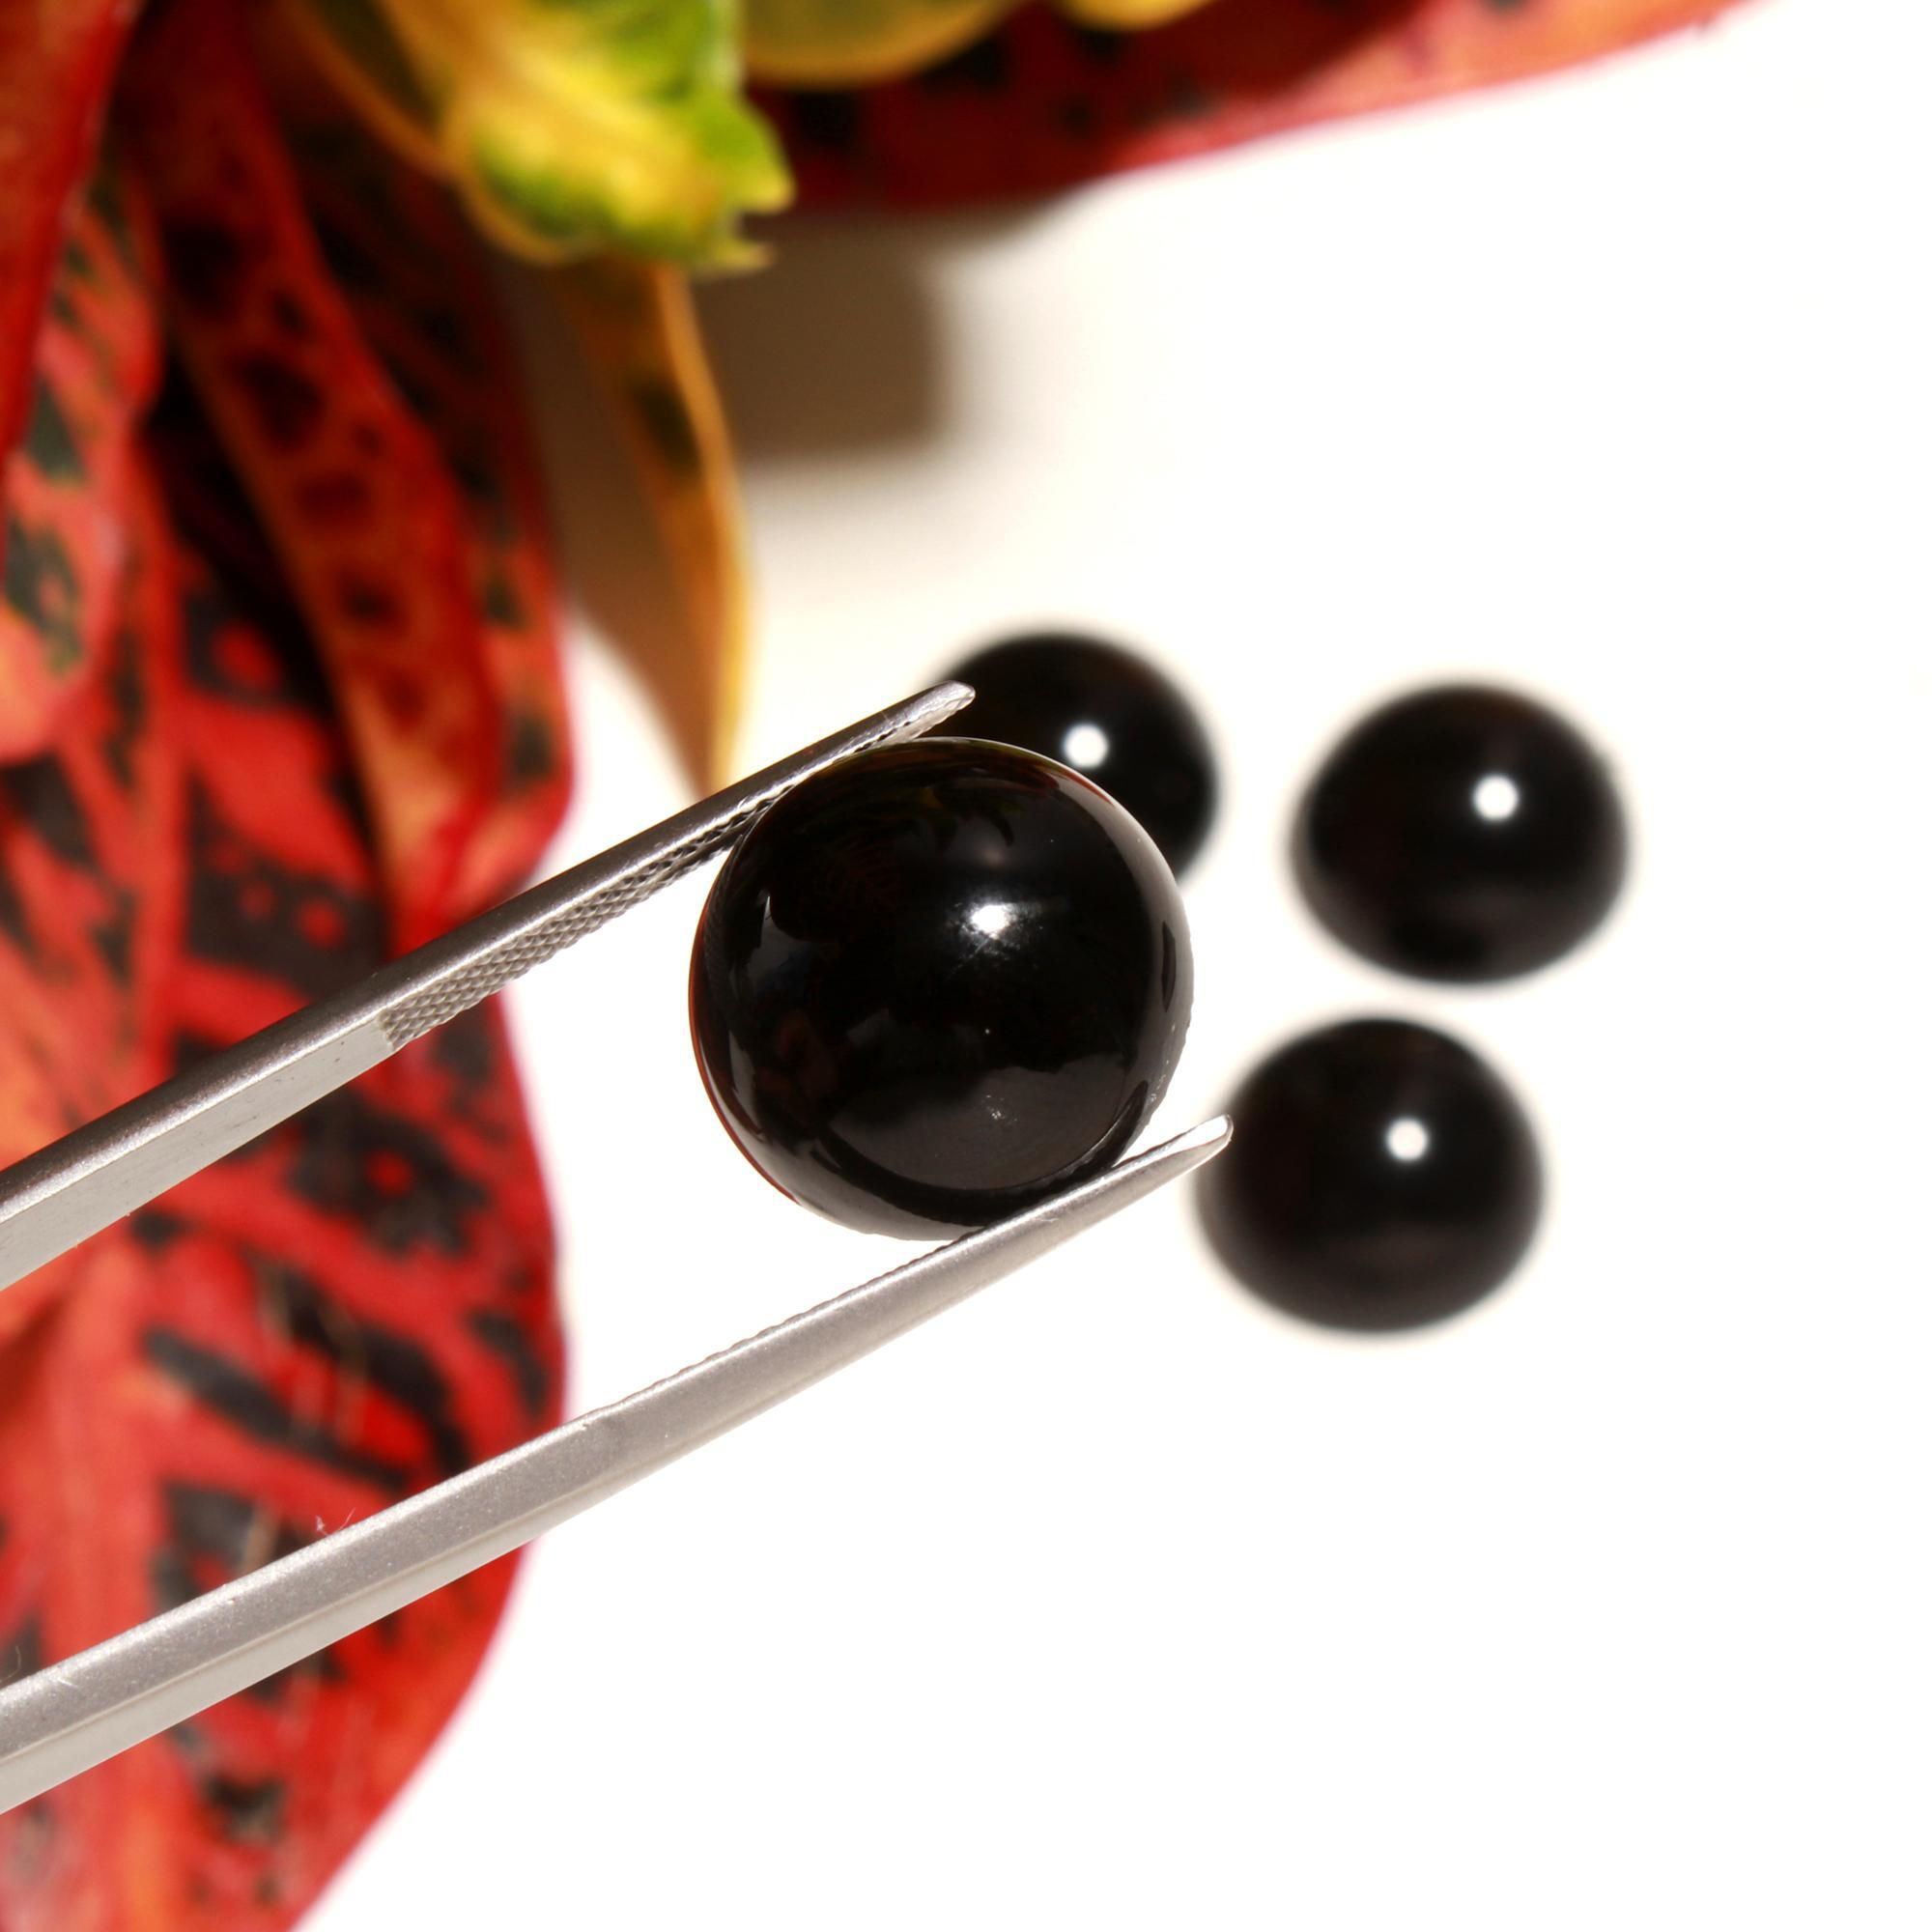 4 Pcs 50Cts. Synthetic Black Glass Round Cabochon Loose Gemstone wholesale Lots 16 X 16 MM.